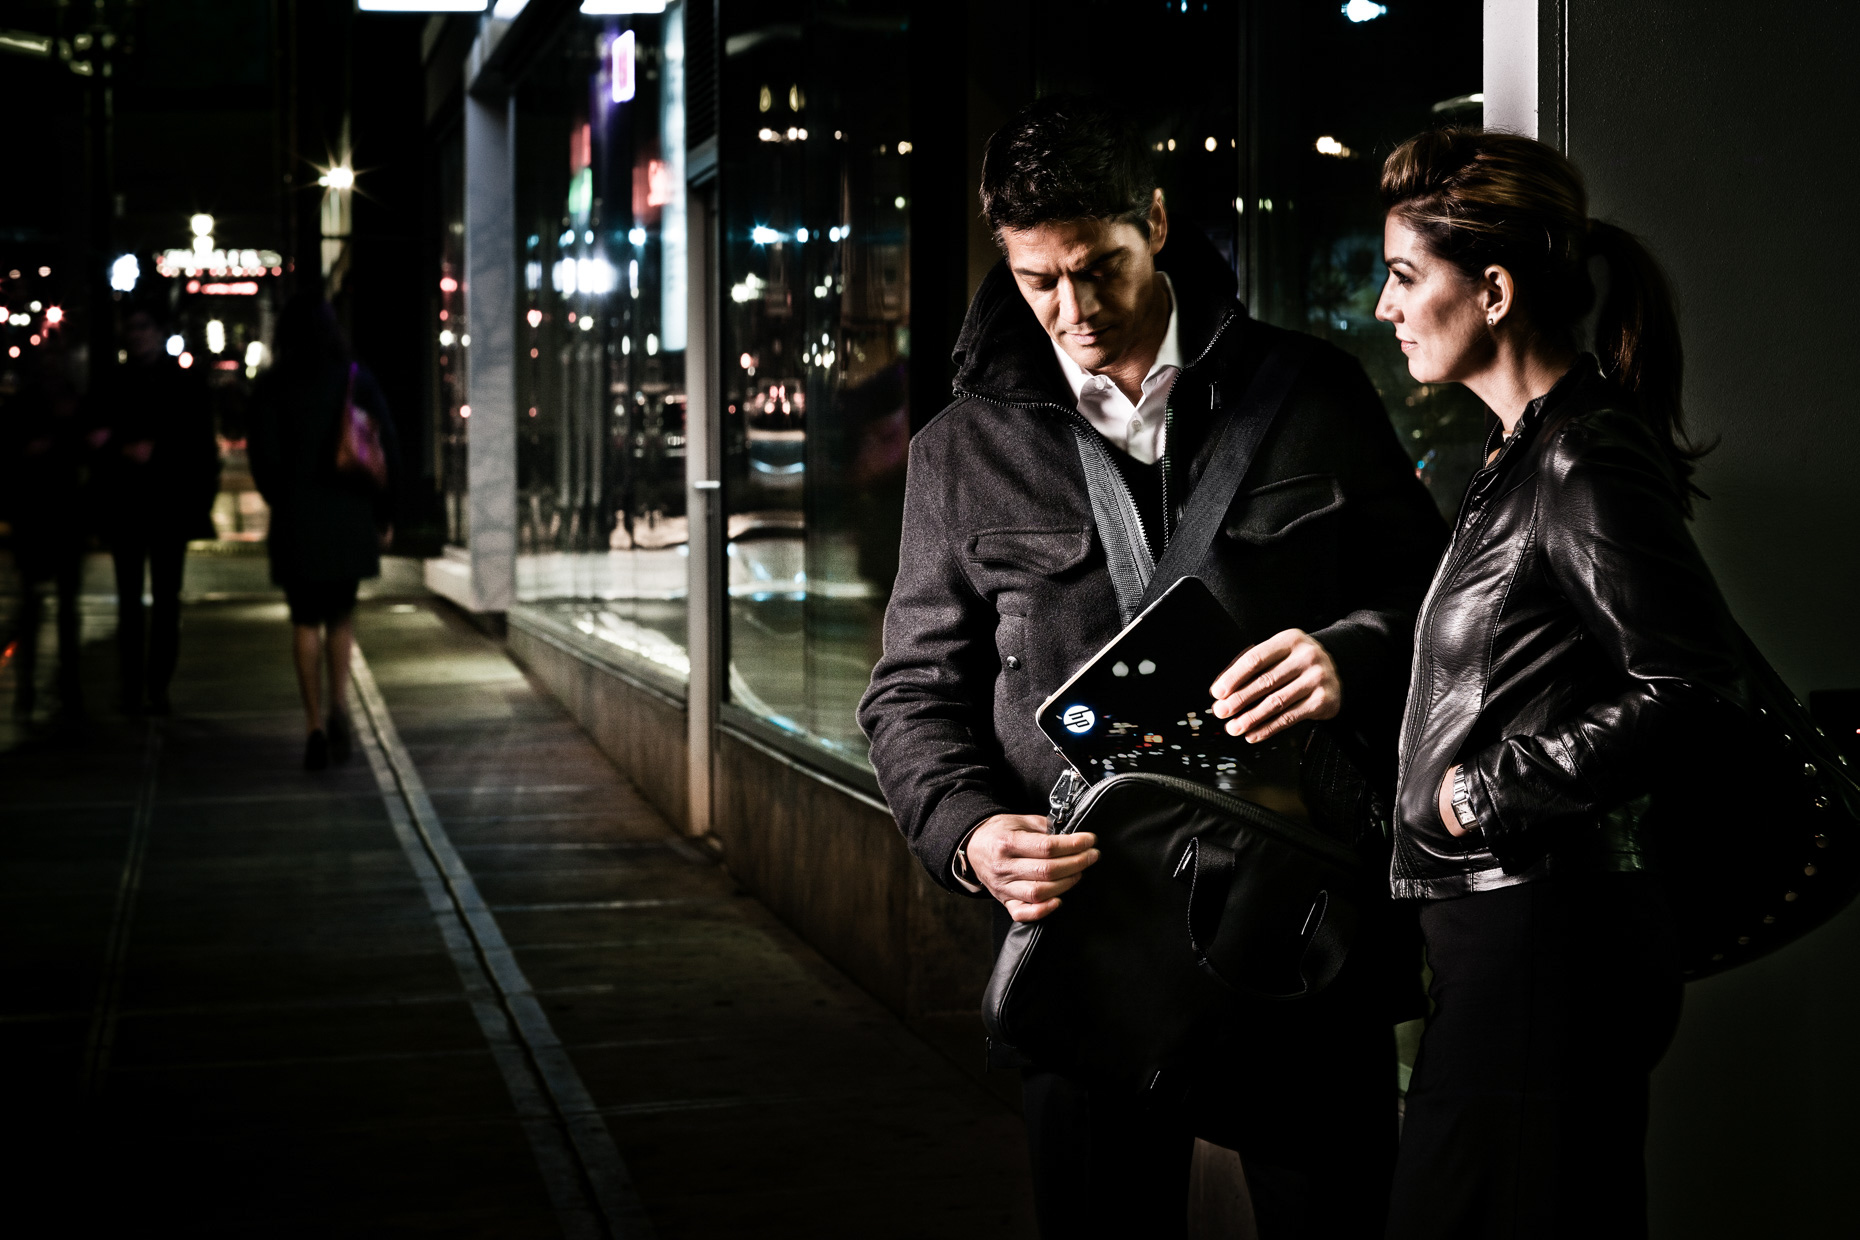 Portland models Veli Duvauchelle Tina Kraft for HP Spectre laptop campaign in urban downtown by Andy Batt.